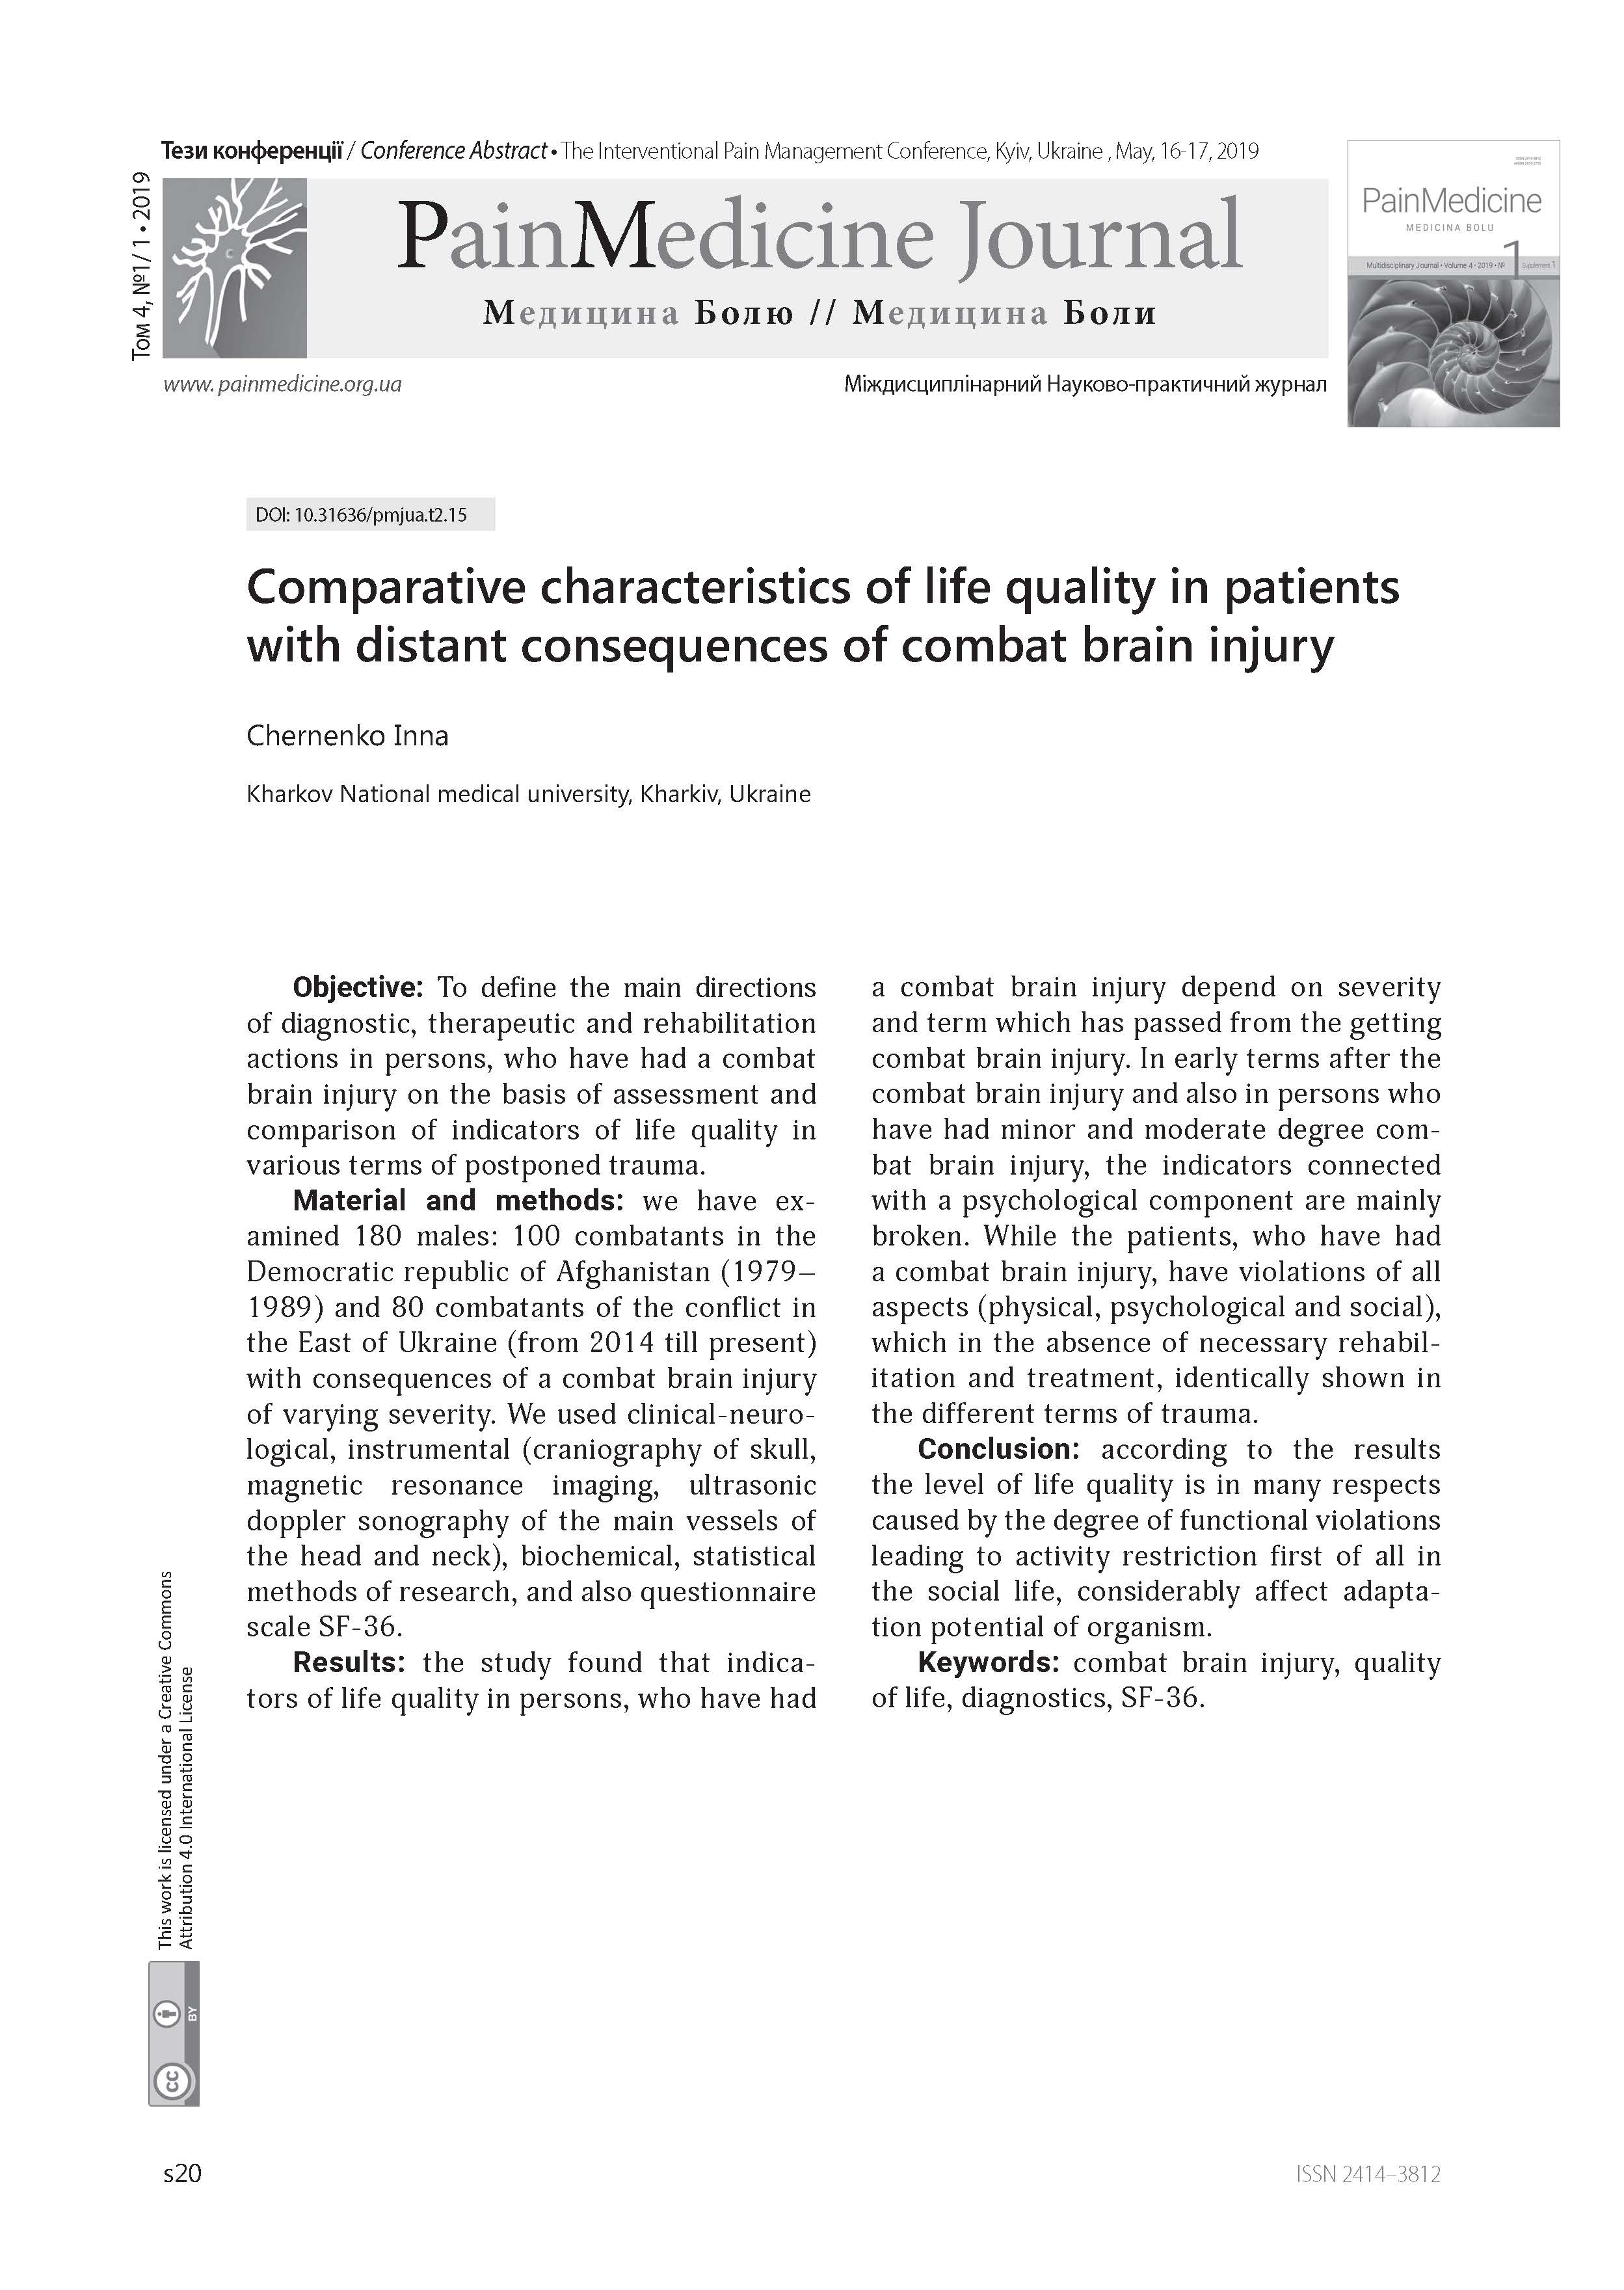 Comparative characteristics of life quality in patients with distant consequences of combat brain injury